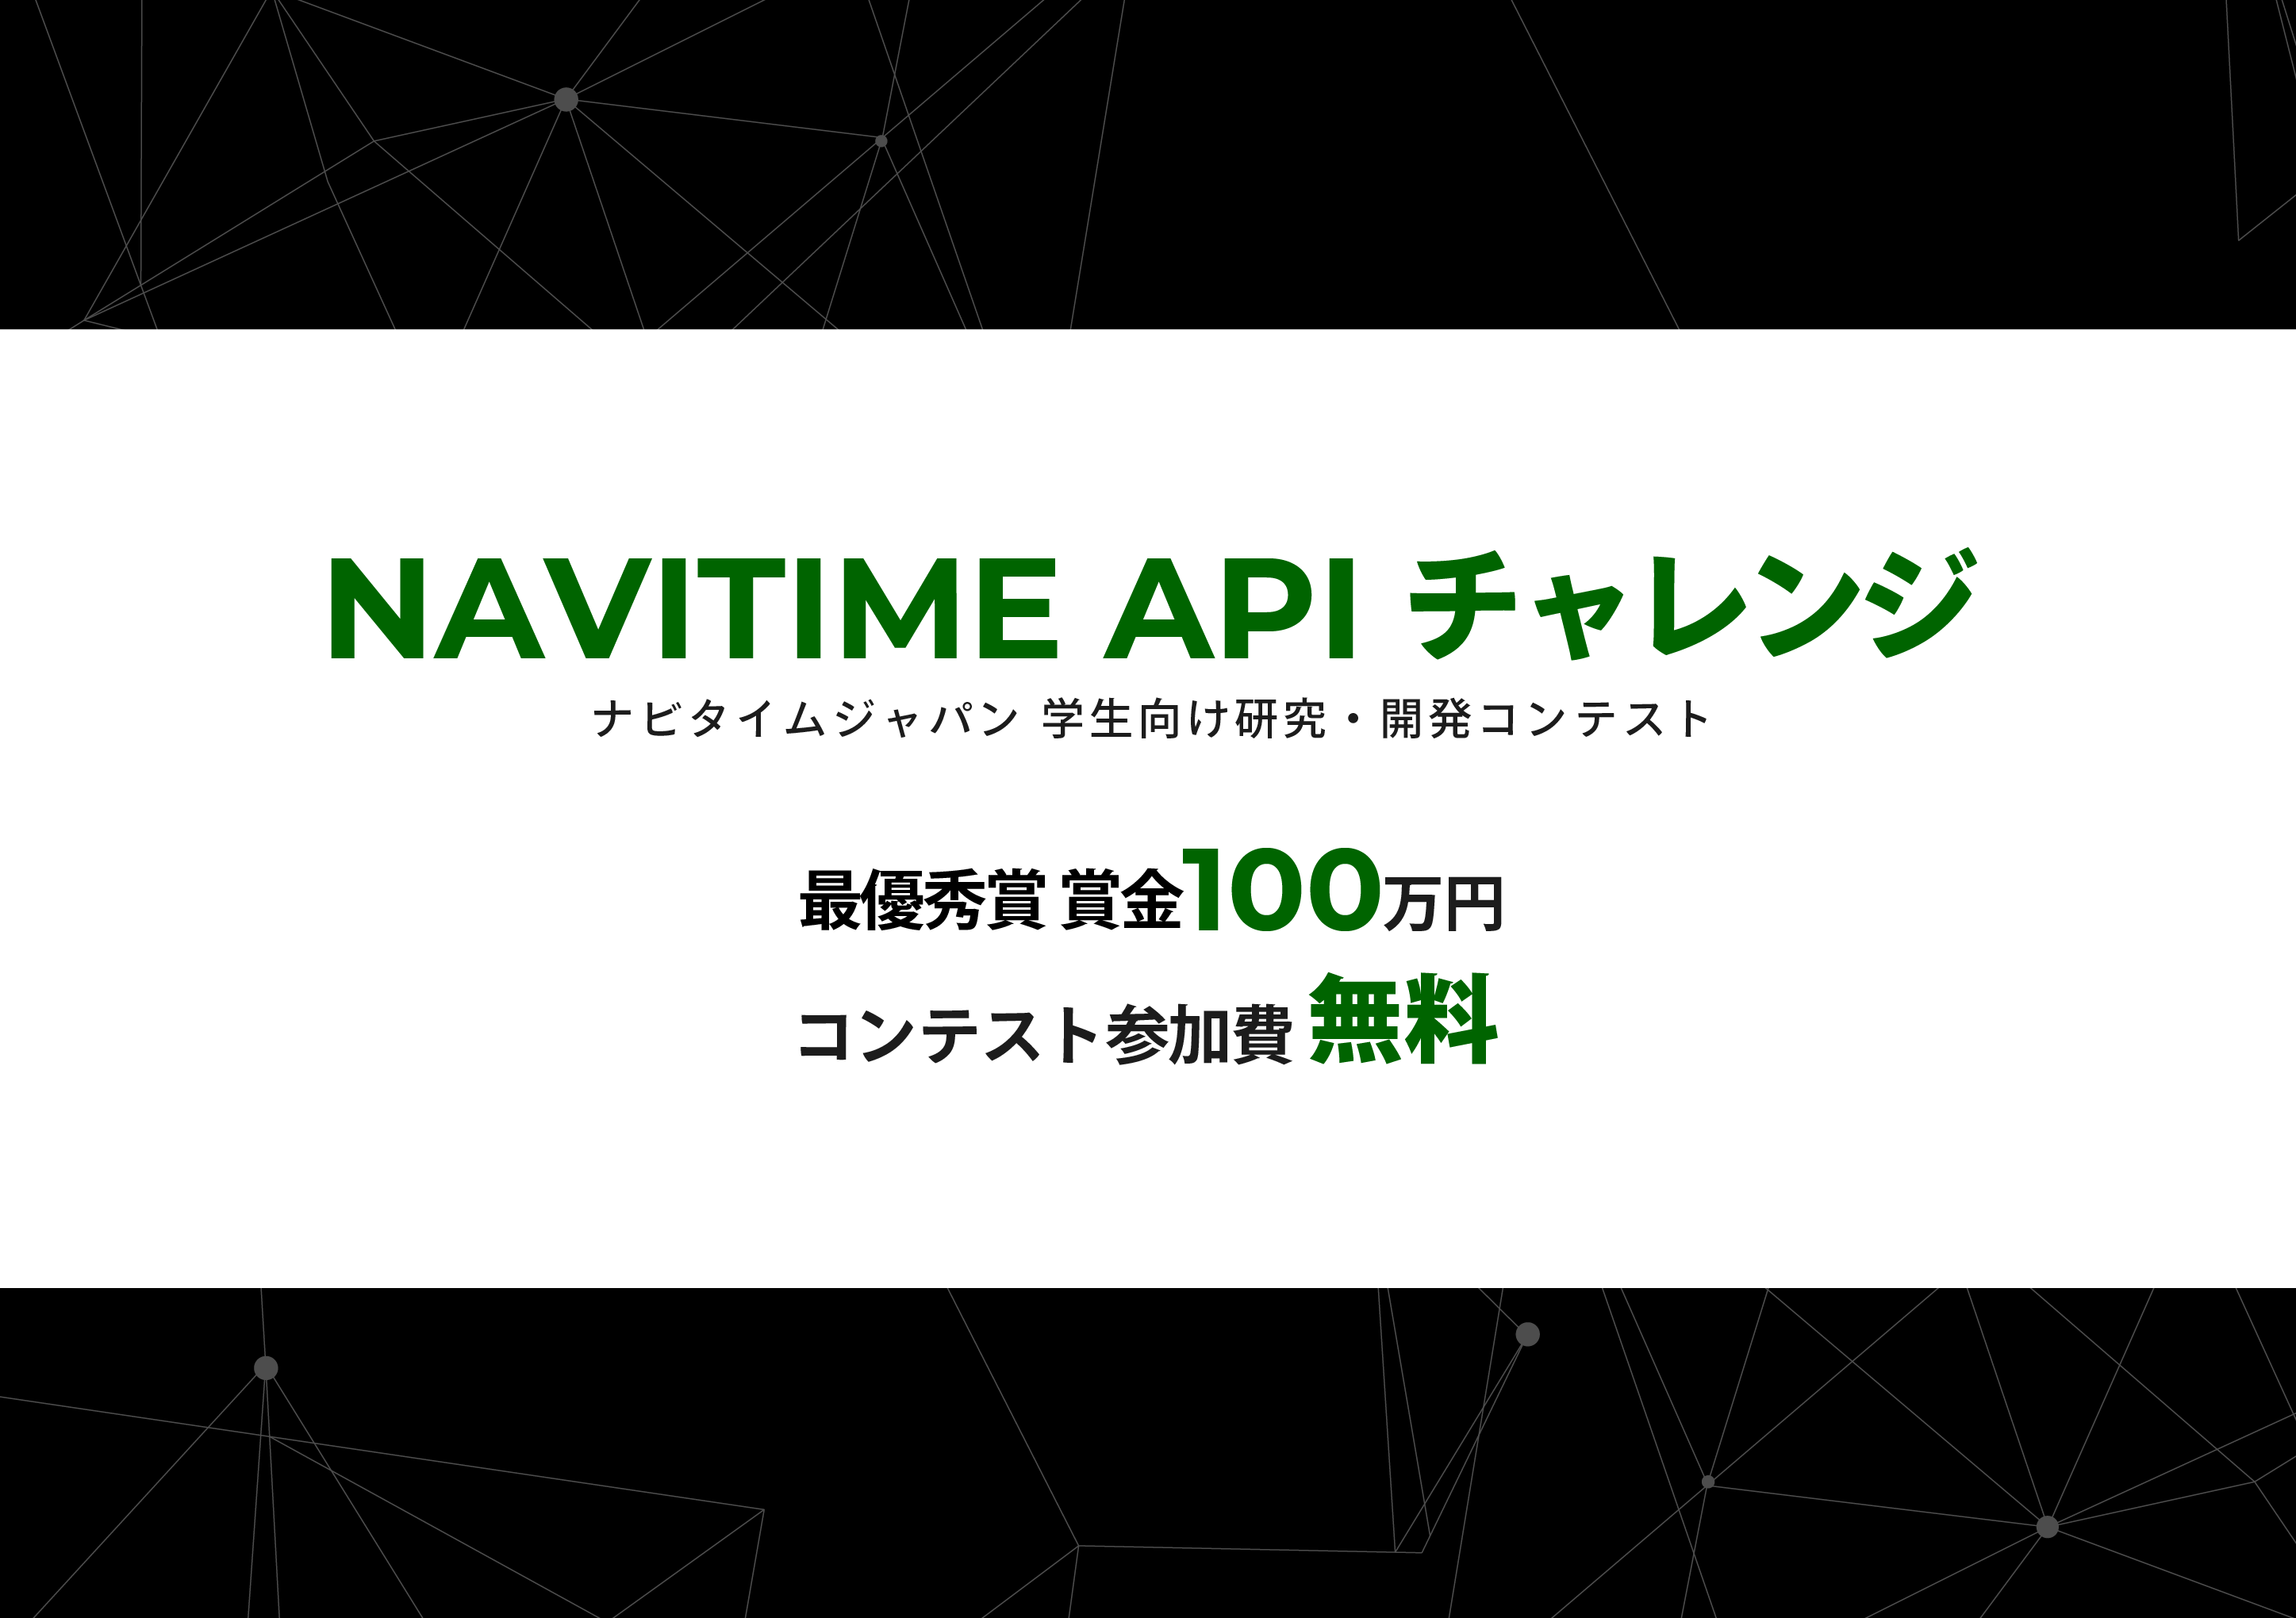 http://corporate.navitime.co.jp/topics/c3f06fb4511a9e02238947bc72ccd8bfdcb4b75f.png